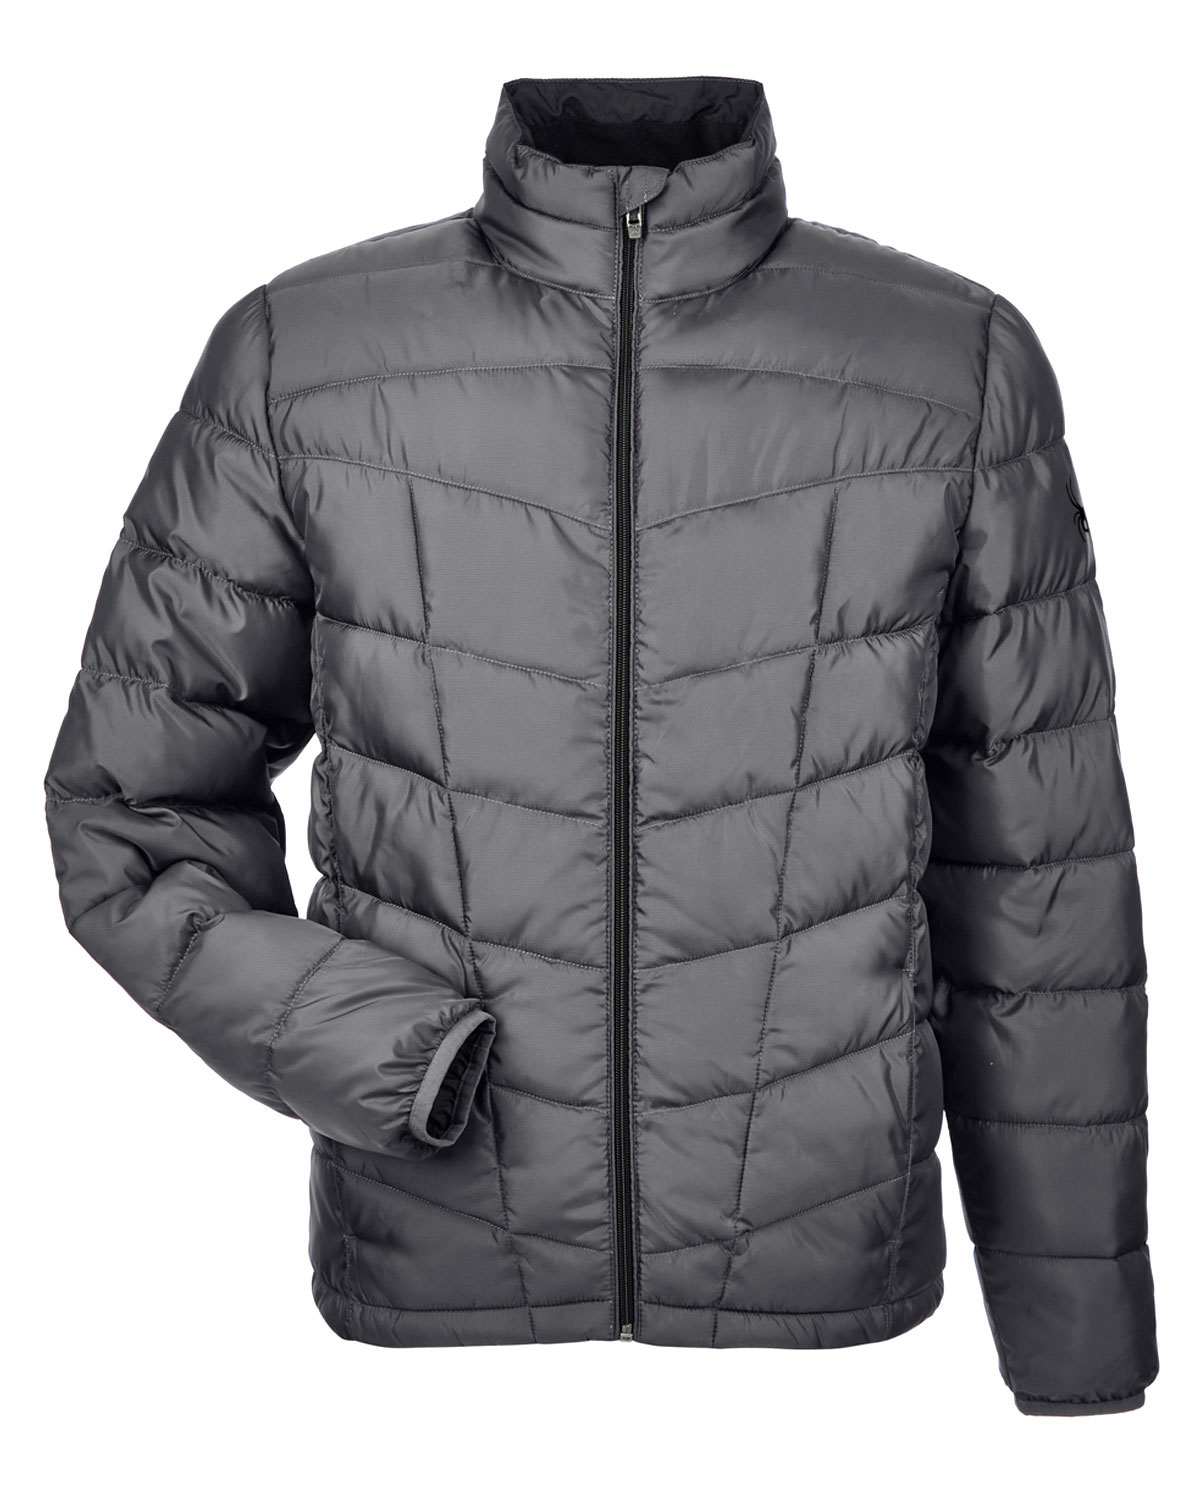 Spyder Mens Pelmo Insulated Puffer Jacket